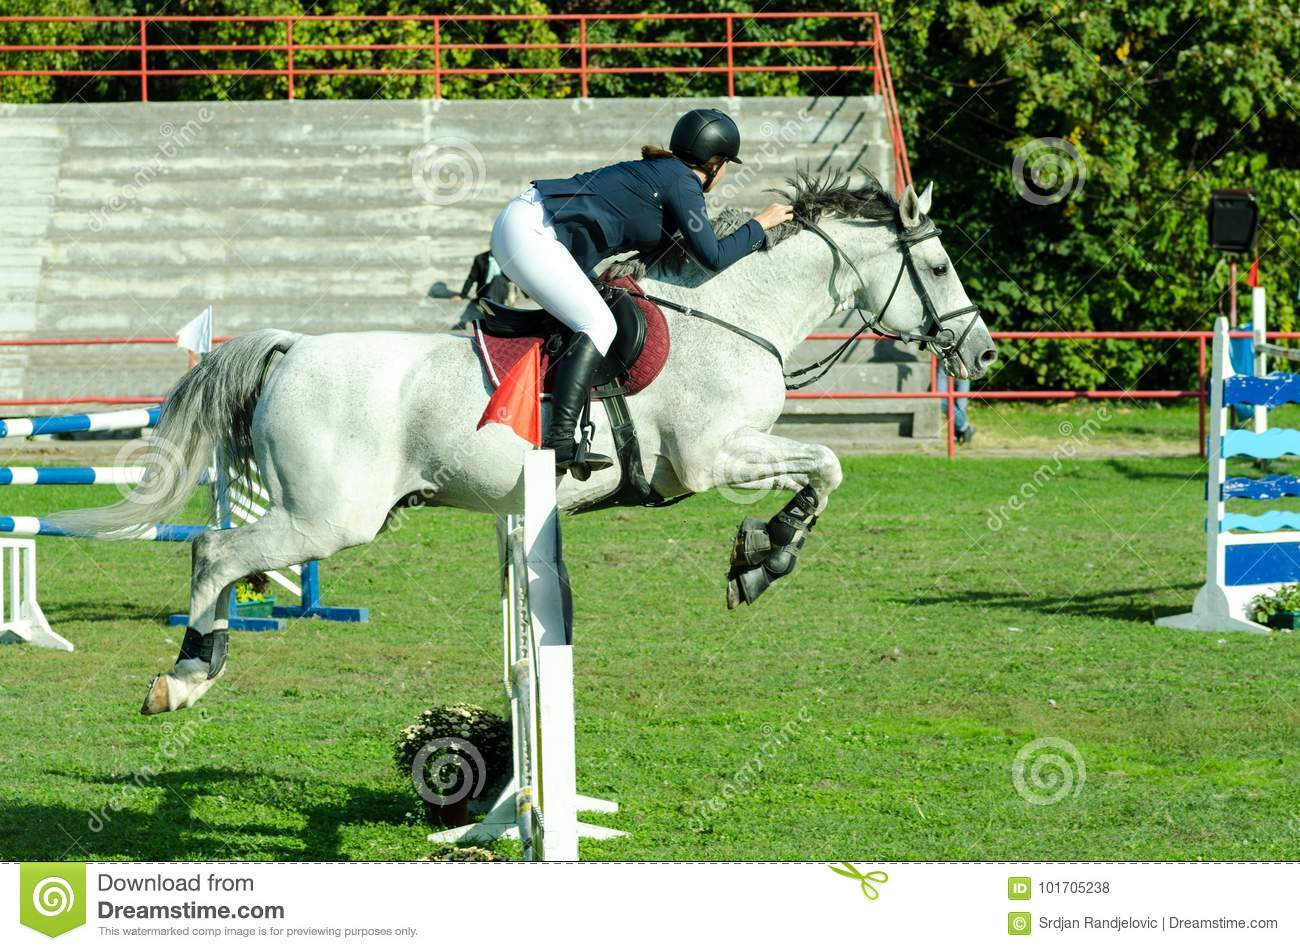 Young Woman Jockey Ride Beautiful White Horse And Jump Over The Crotch In Equestrian Sport Stock Photo Image Of Lifestyle Competition 101705238